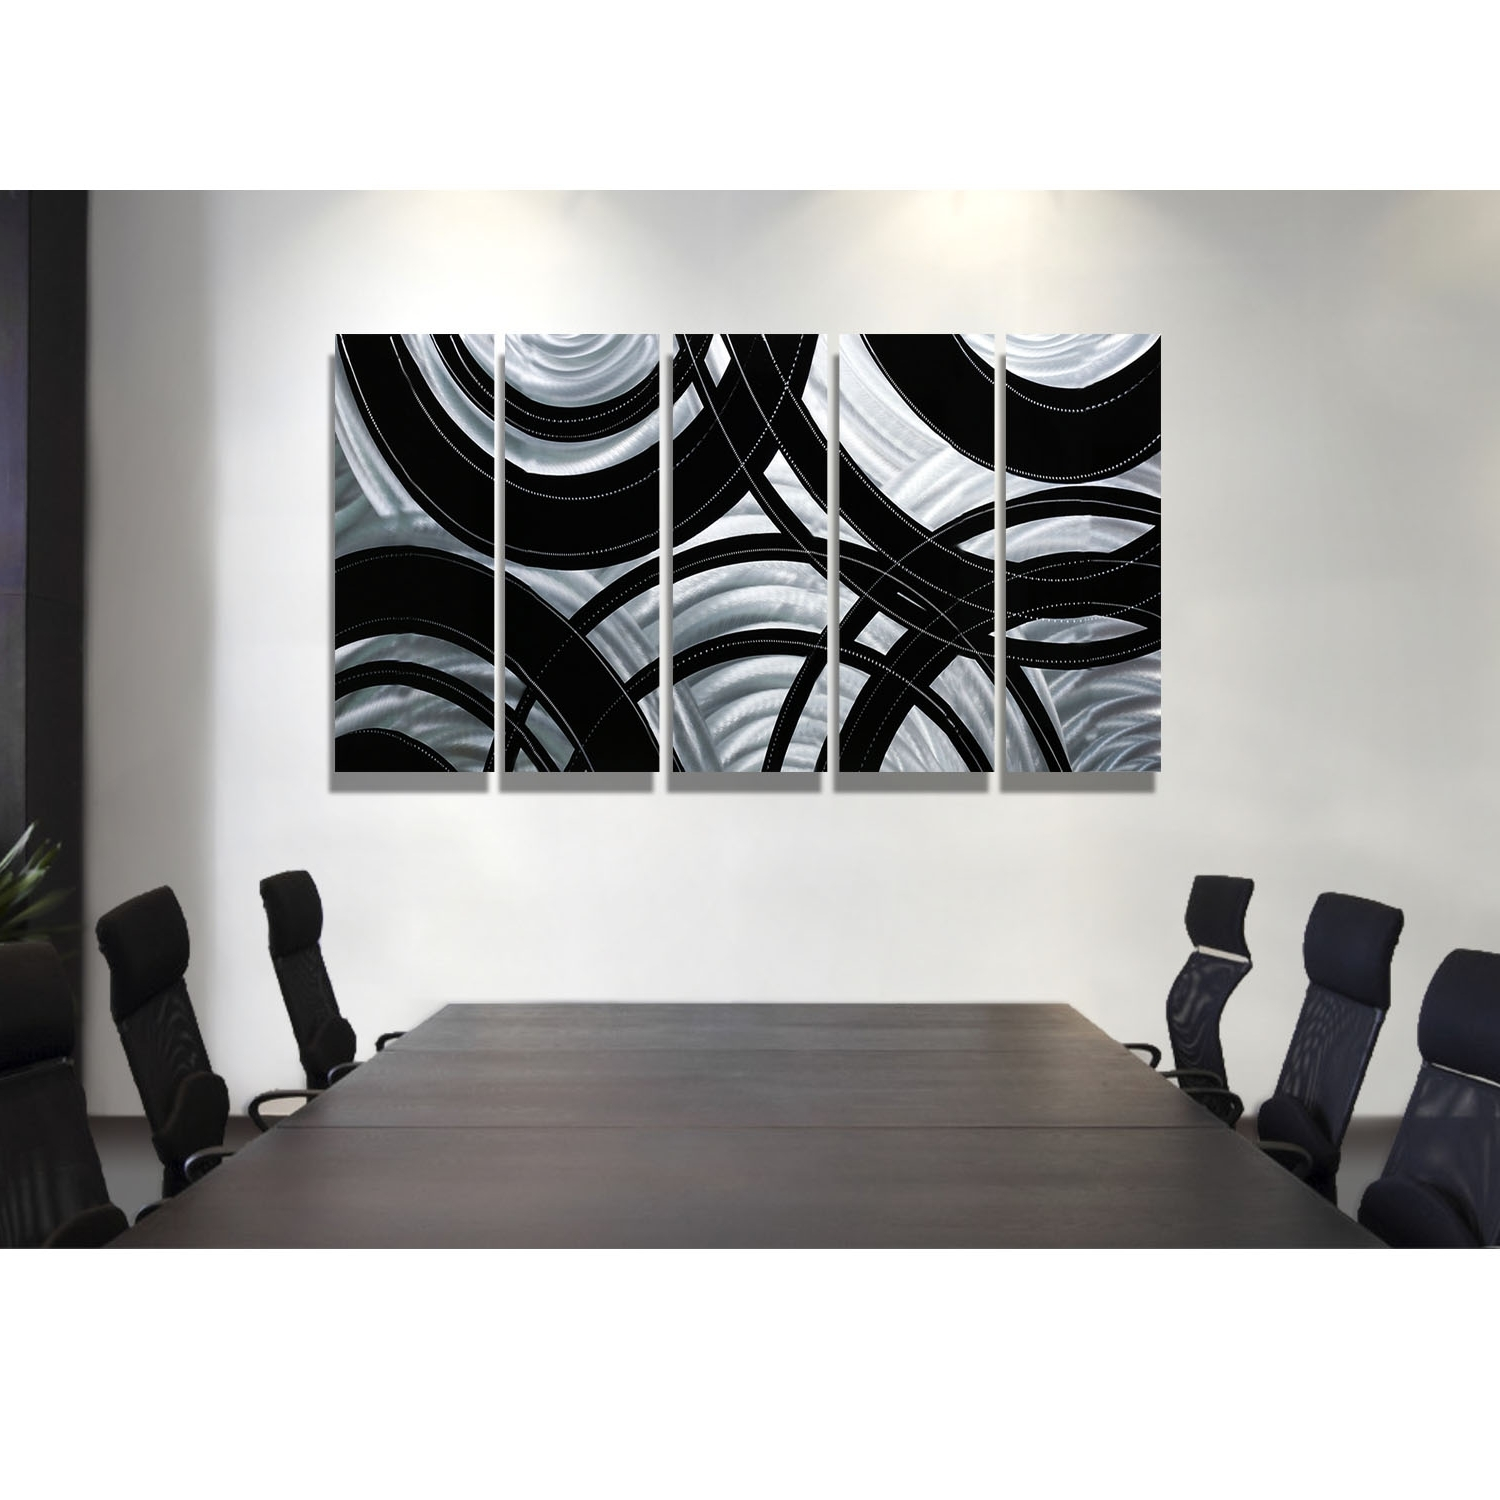 Latest Synergy – Black And Silver Metal Wall Art – 5 Panel Wall Décor Within Black Silver Wall Art (View 12 of 15)